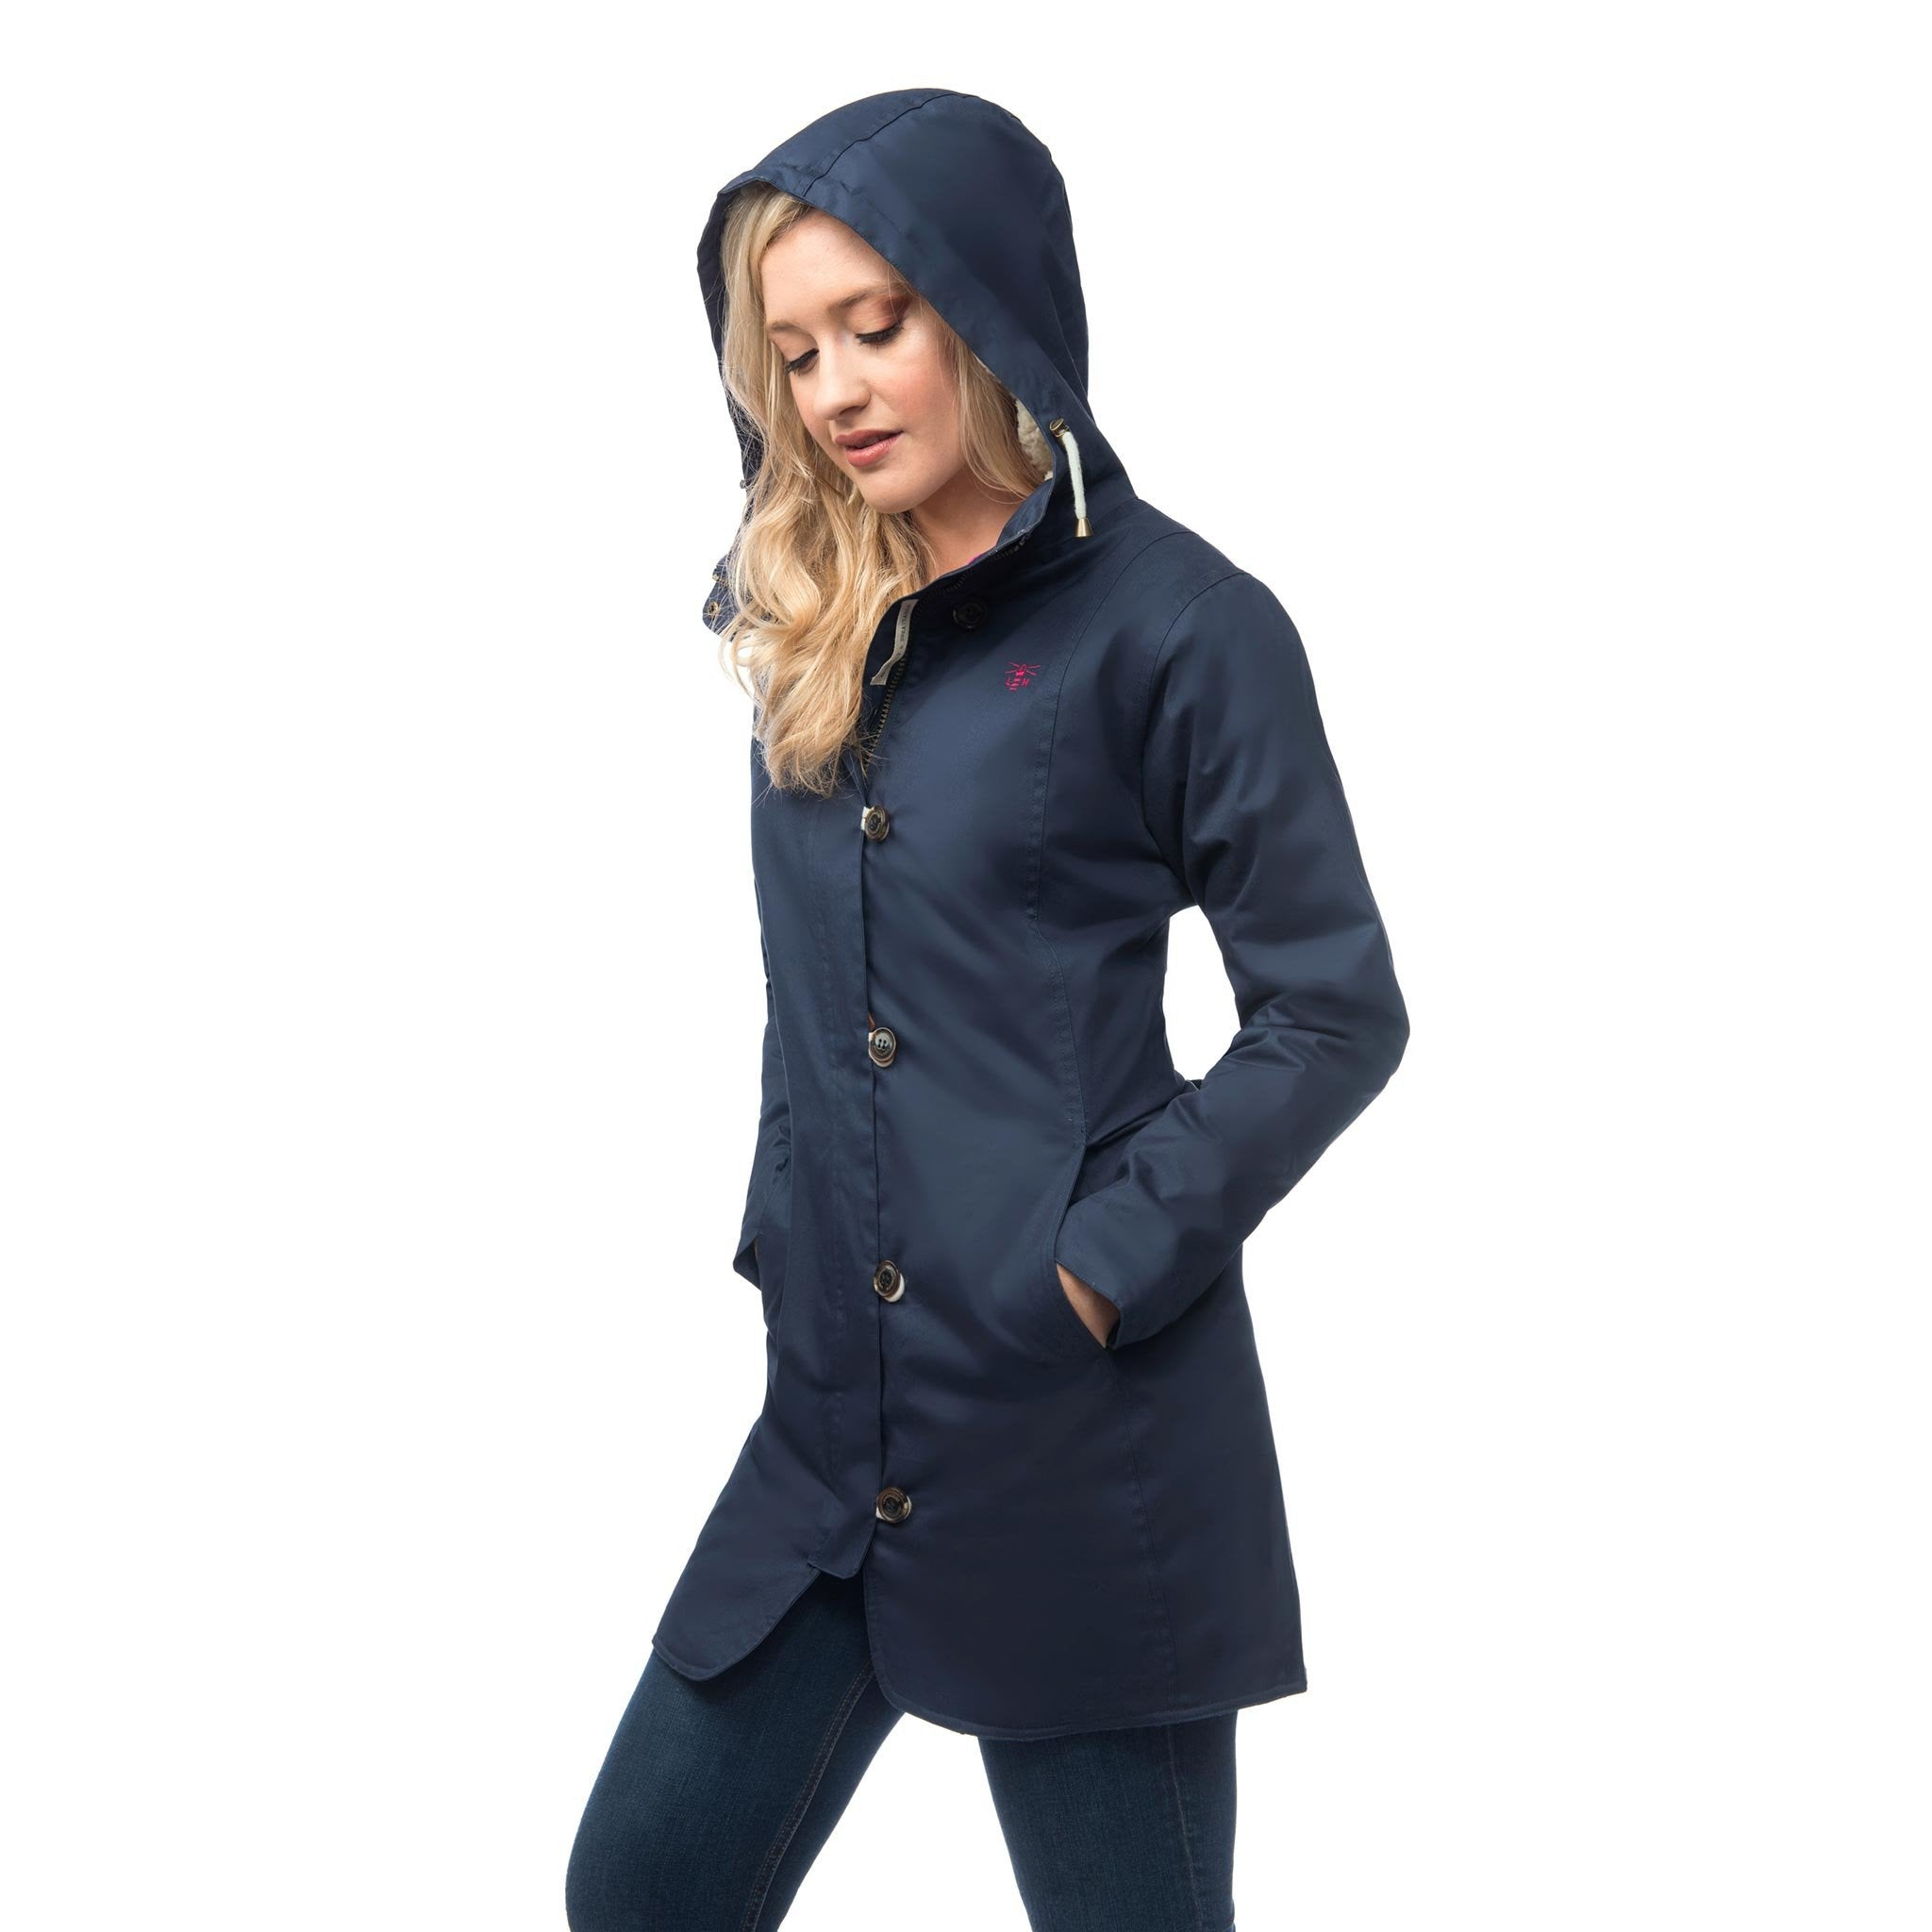 Lighthouse Womens Reva Waterproof Hooded Parka Raincoat in Navy Nightshade. Hood up.